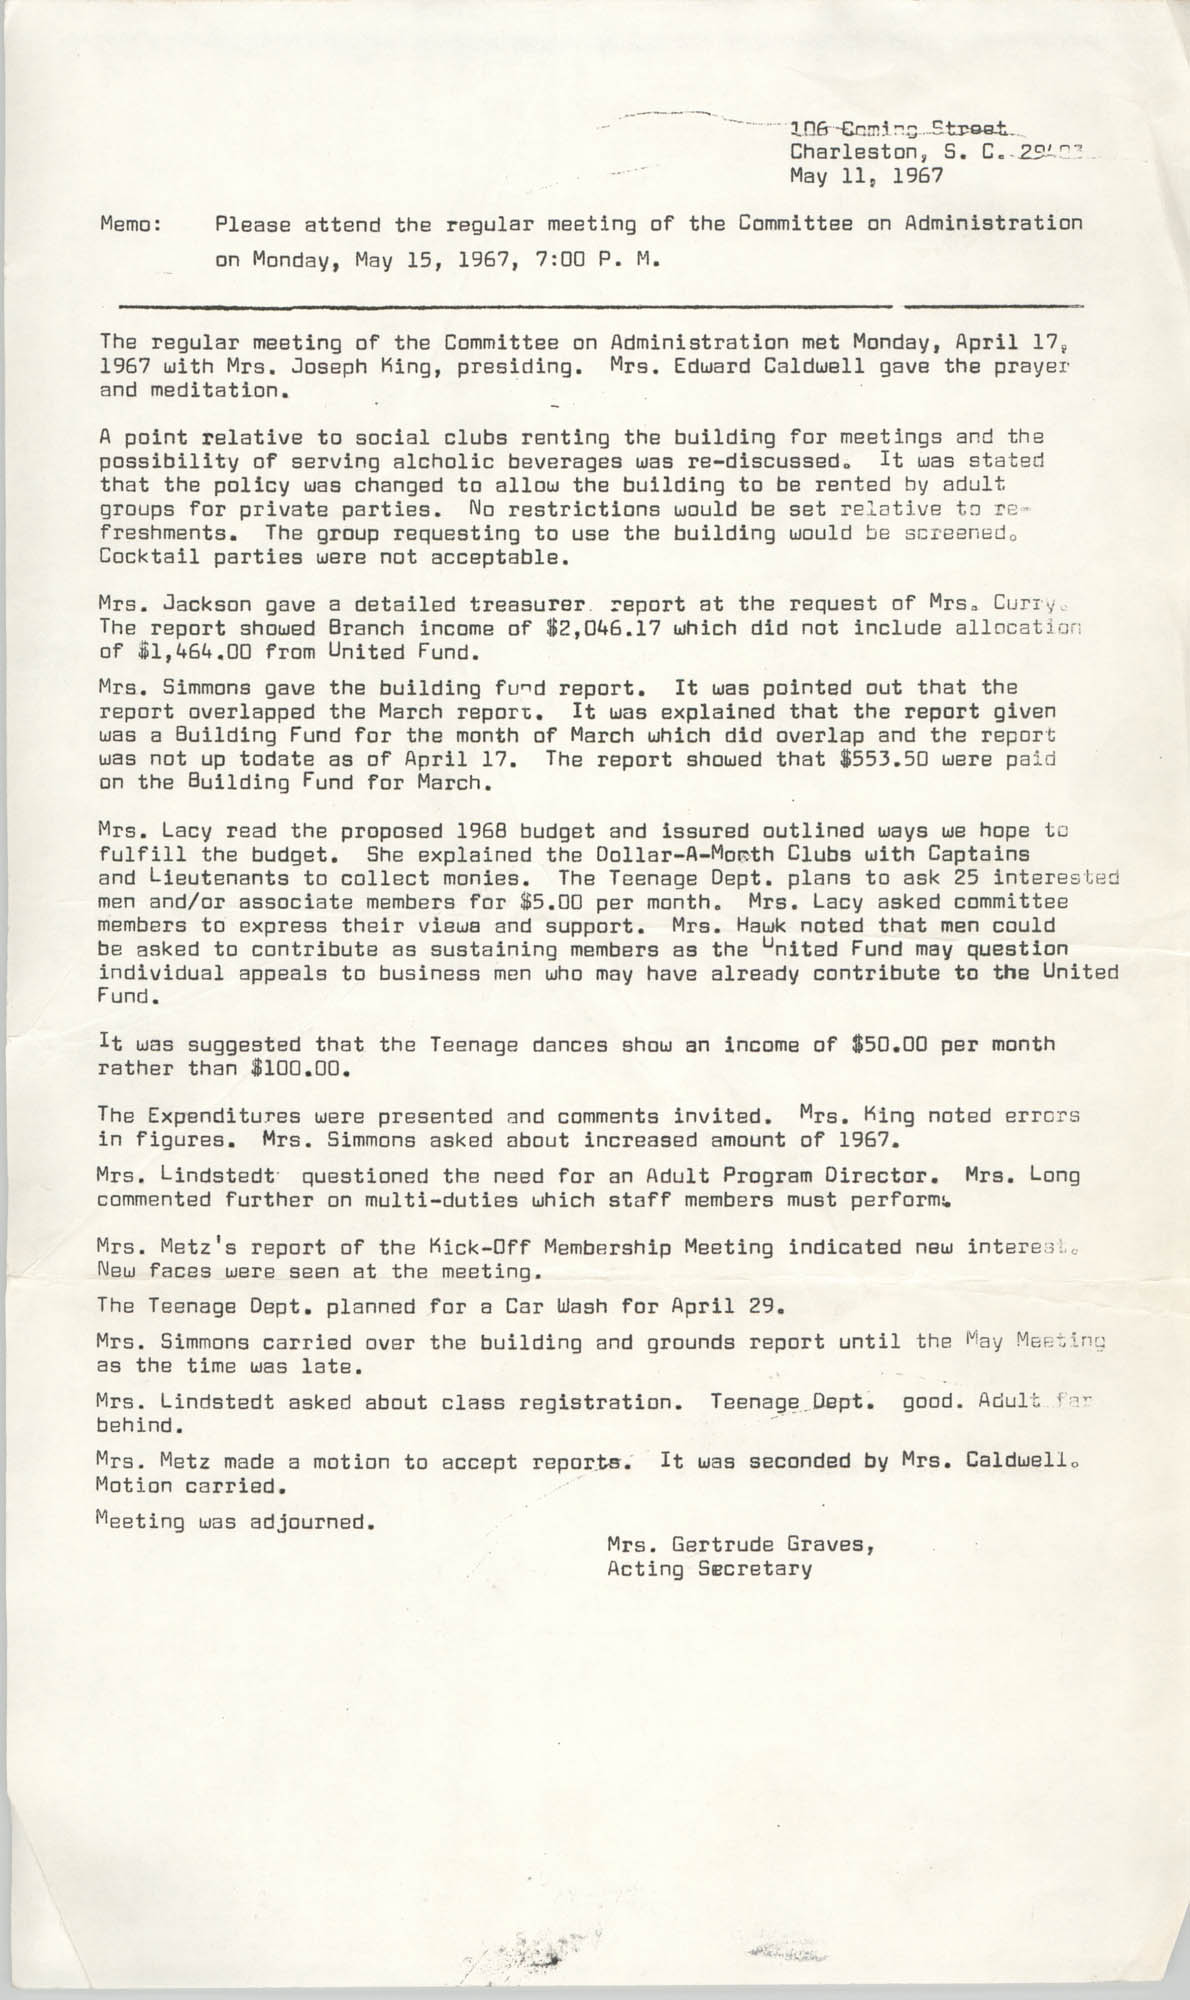 Coming Street Y.W.C.A. Memorandum, May 11, 1967